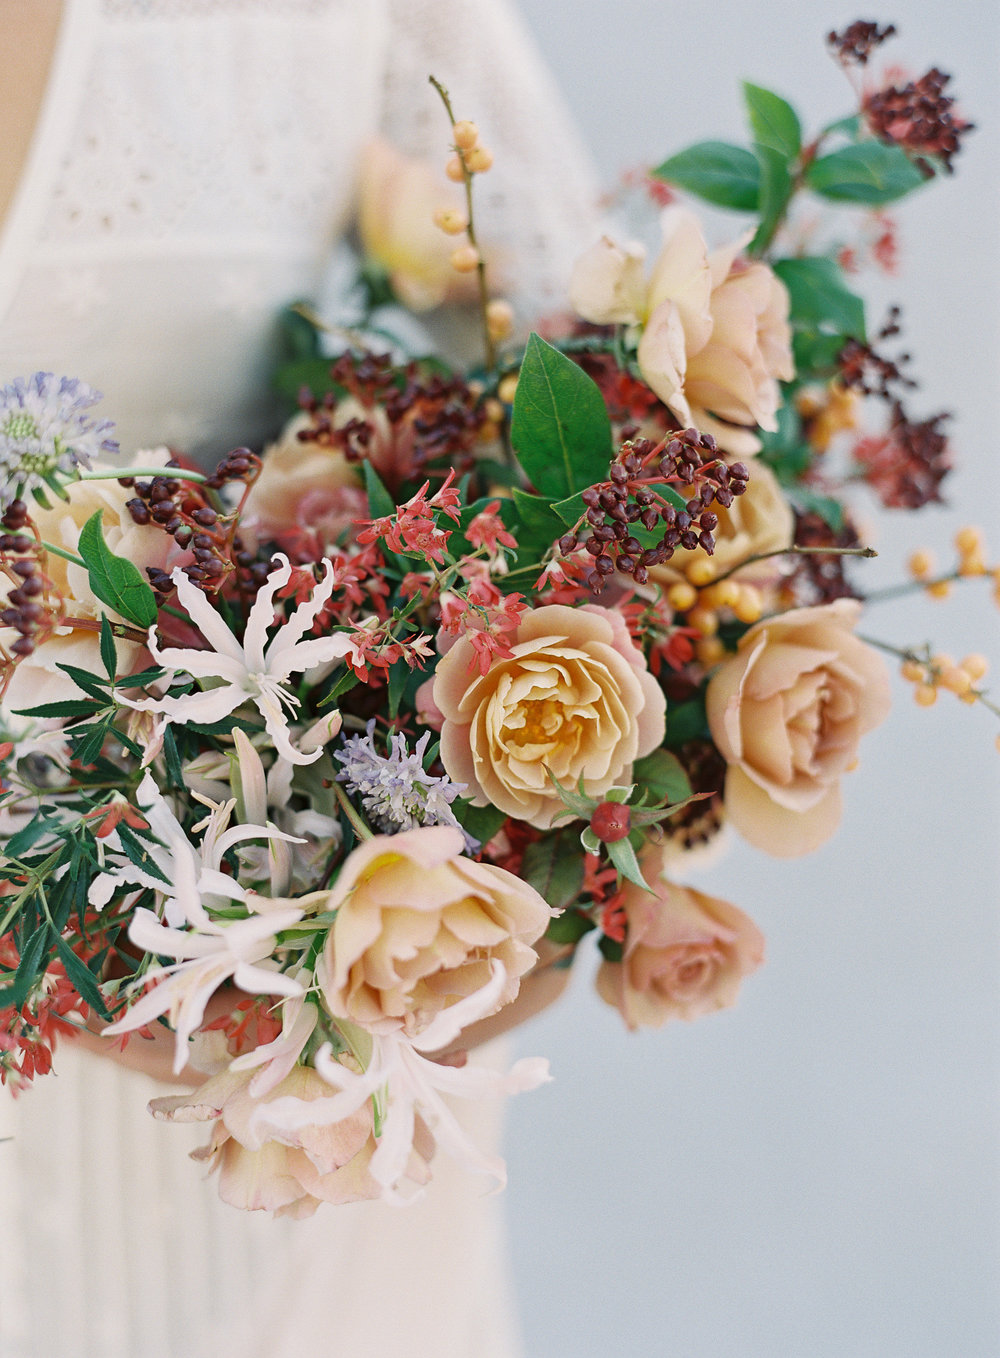 NECTAR + BLOOM || Garden Rose Autumn Bridal Bouquet in Warm Corals + Neutrals || Nectar + Bloom bridal bouquet || Sposto Photography || #fineartweddingflowers #fineartfloraldesign #fineartwedding #sandiegoweddingflorist #sandiegoflorist  #sandiegofloraldesigner #fineartweddingbouquet #bridalbouquet #bridalstyle #romanticwedding #weddingdetails #modernbride #modernbrialbouquet #bohemian #elegantbride #weddingfashion #fallbridalbouquet #autumbridalbouquet #fallflowers #gardenroses #romanticwedding #romanticbridalbouquet